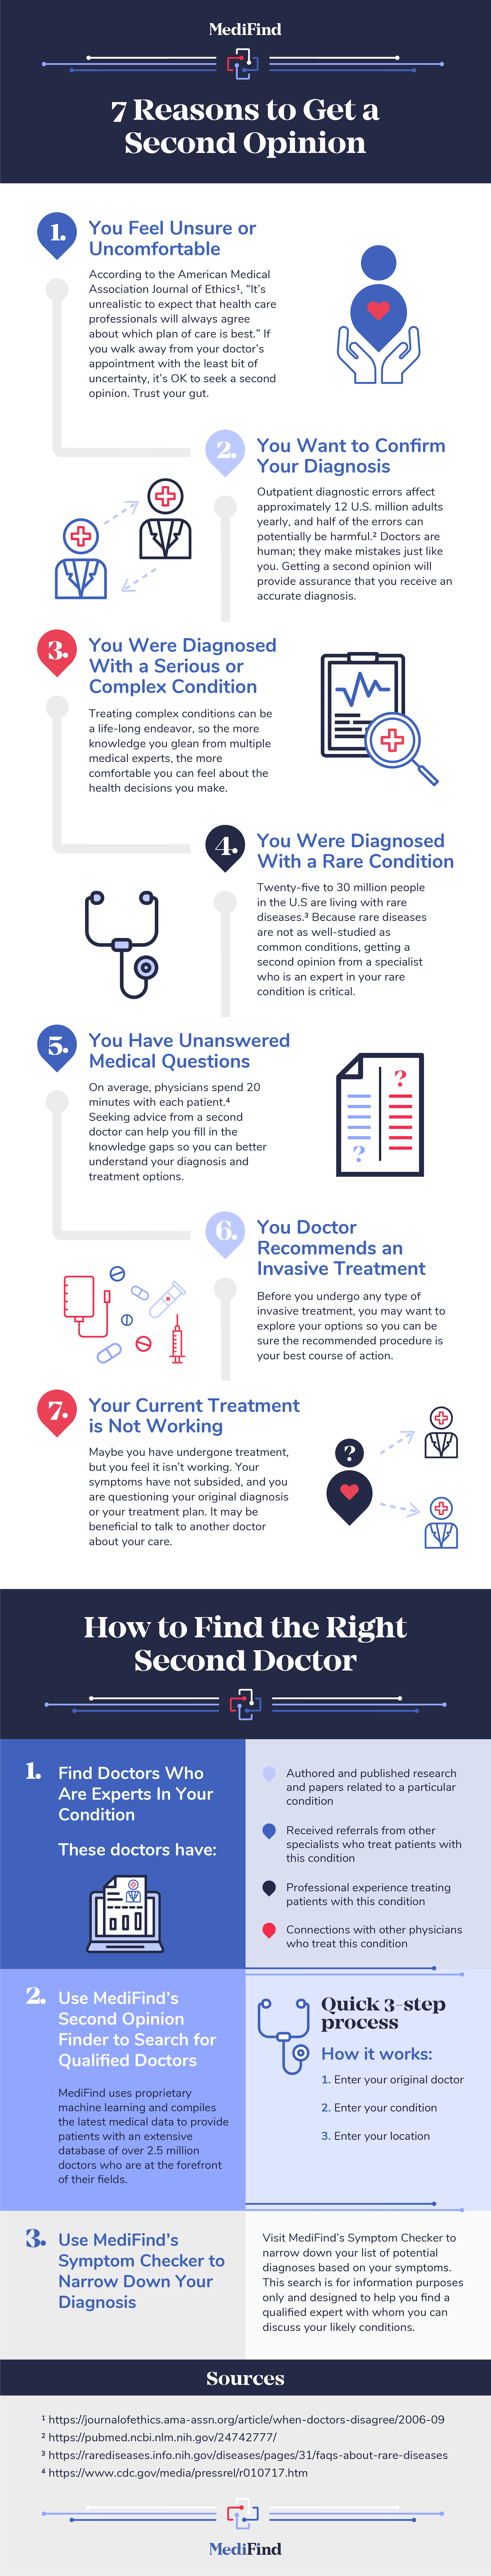 7 Reasons to Get a Second Opinion